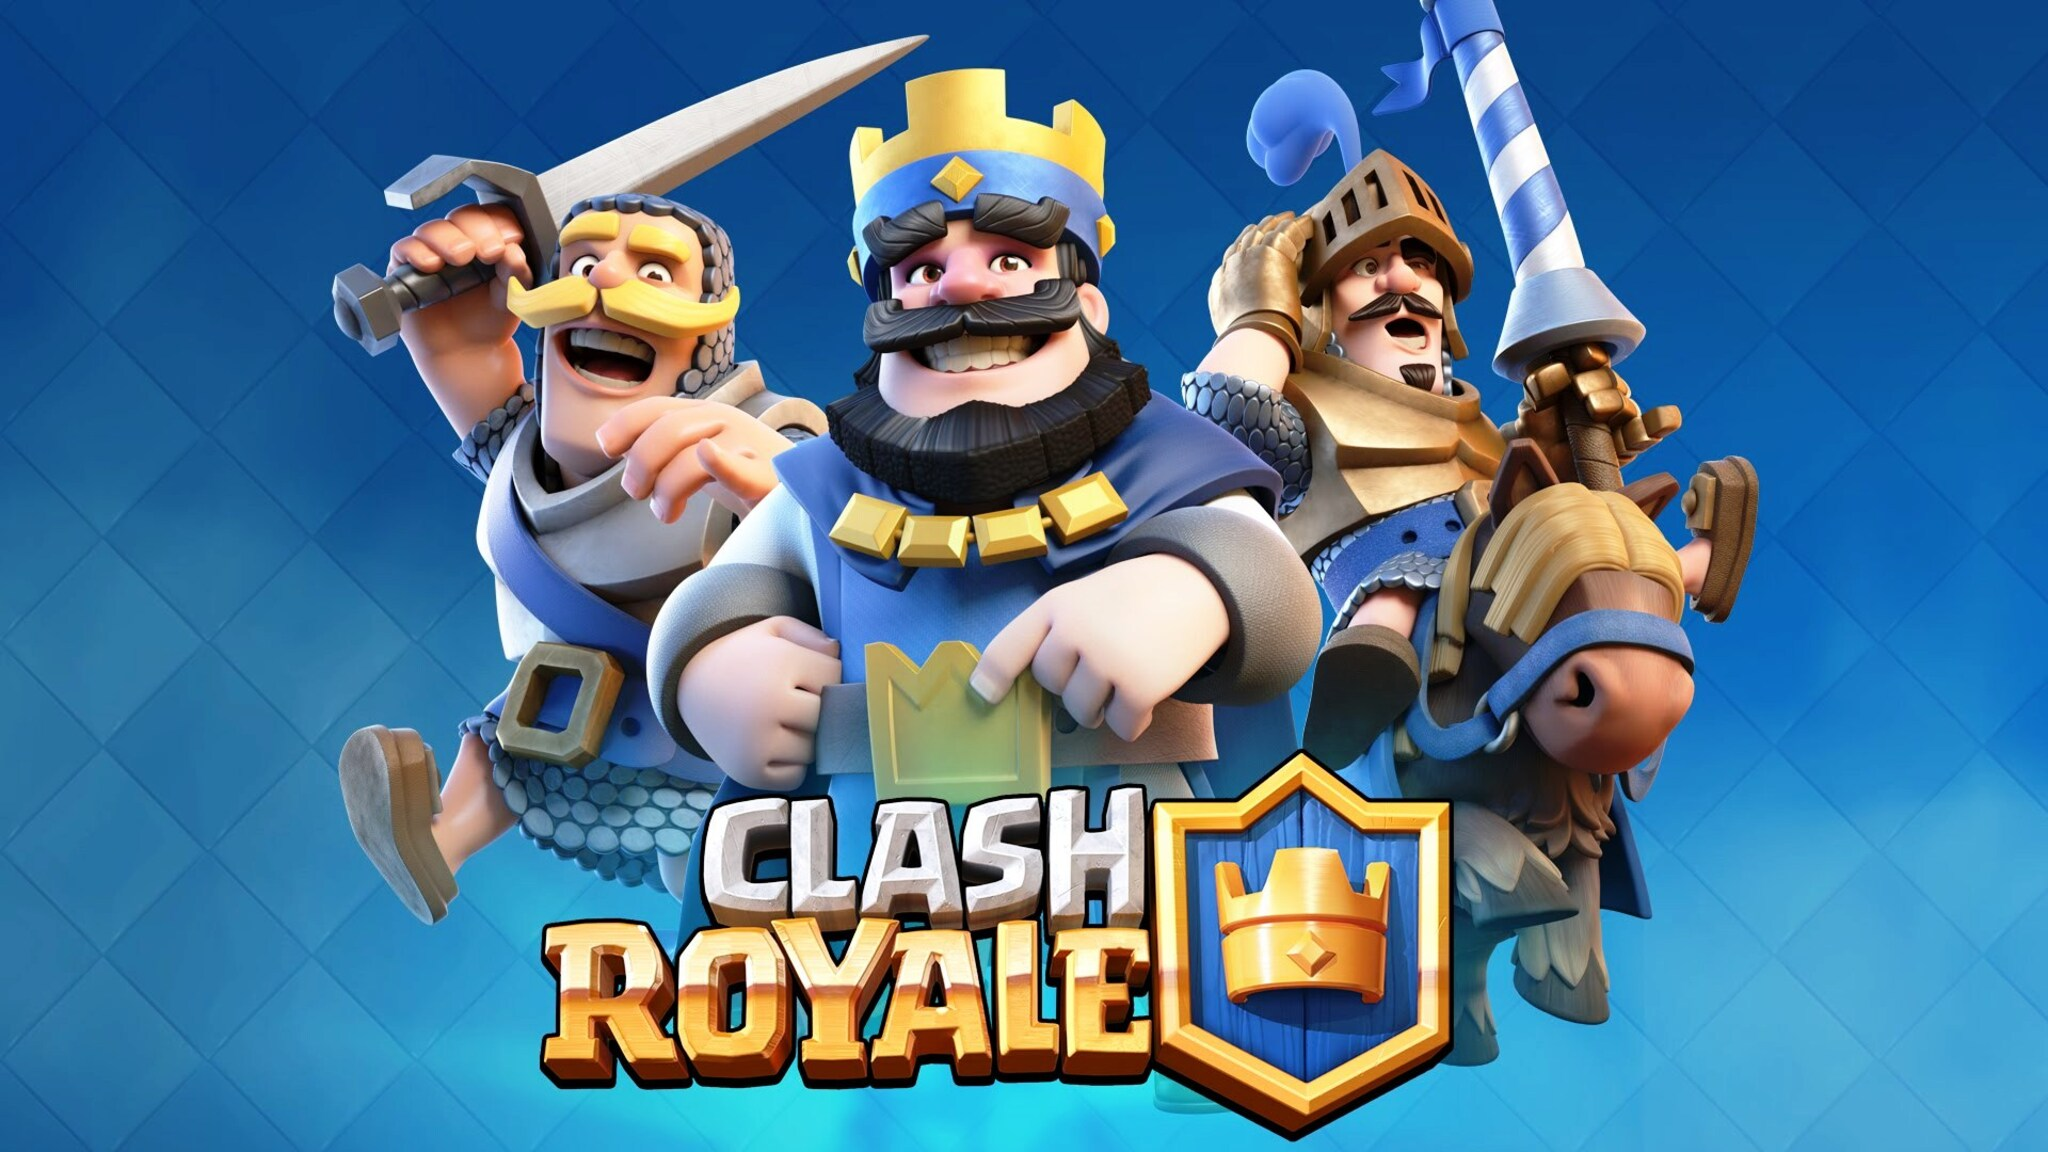 2048x1152 Clash Royale Desktop 2048x1152 Resolution Hd 4k Wallpapers